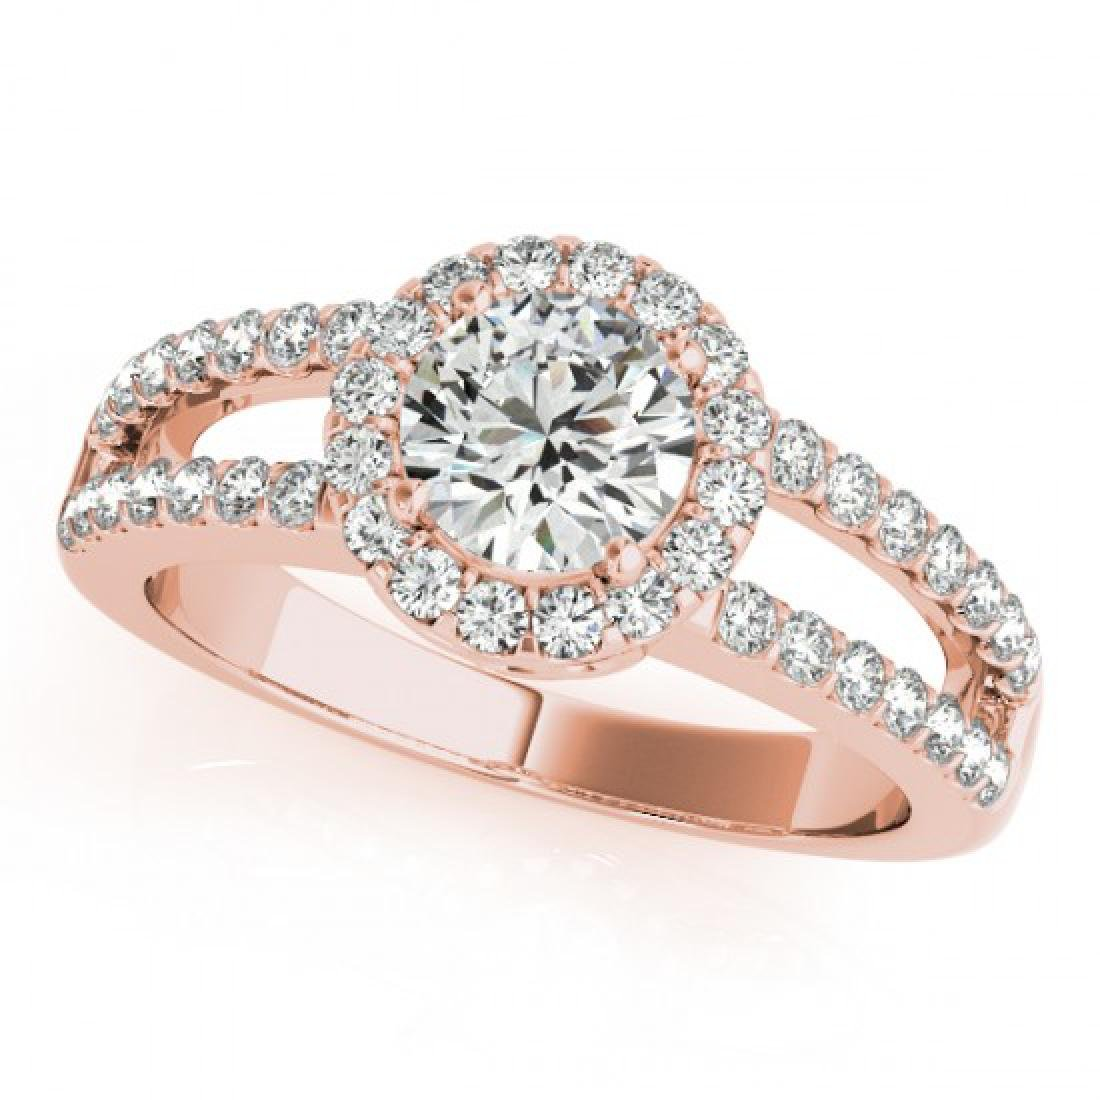 1.26 CTW Certified VS/SI Diamond Solitaire Halo Ring